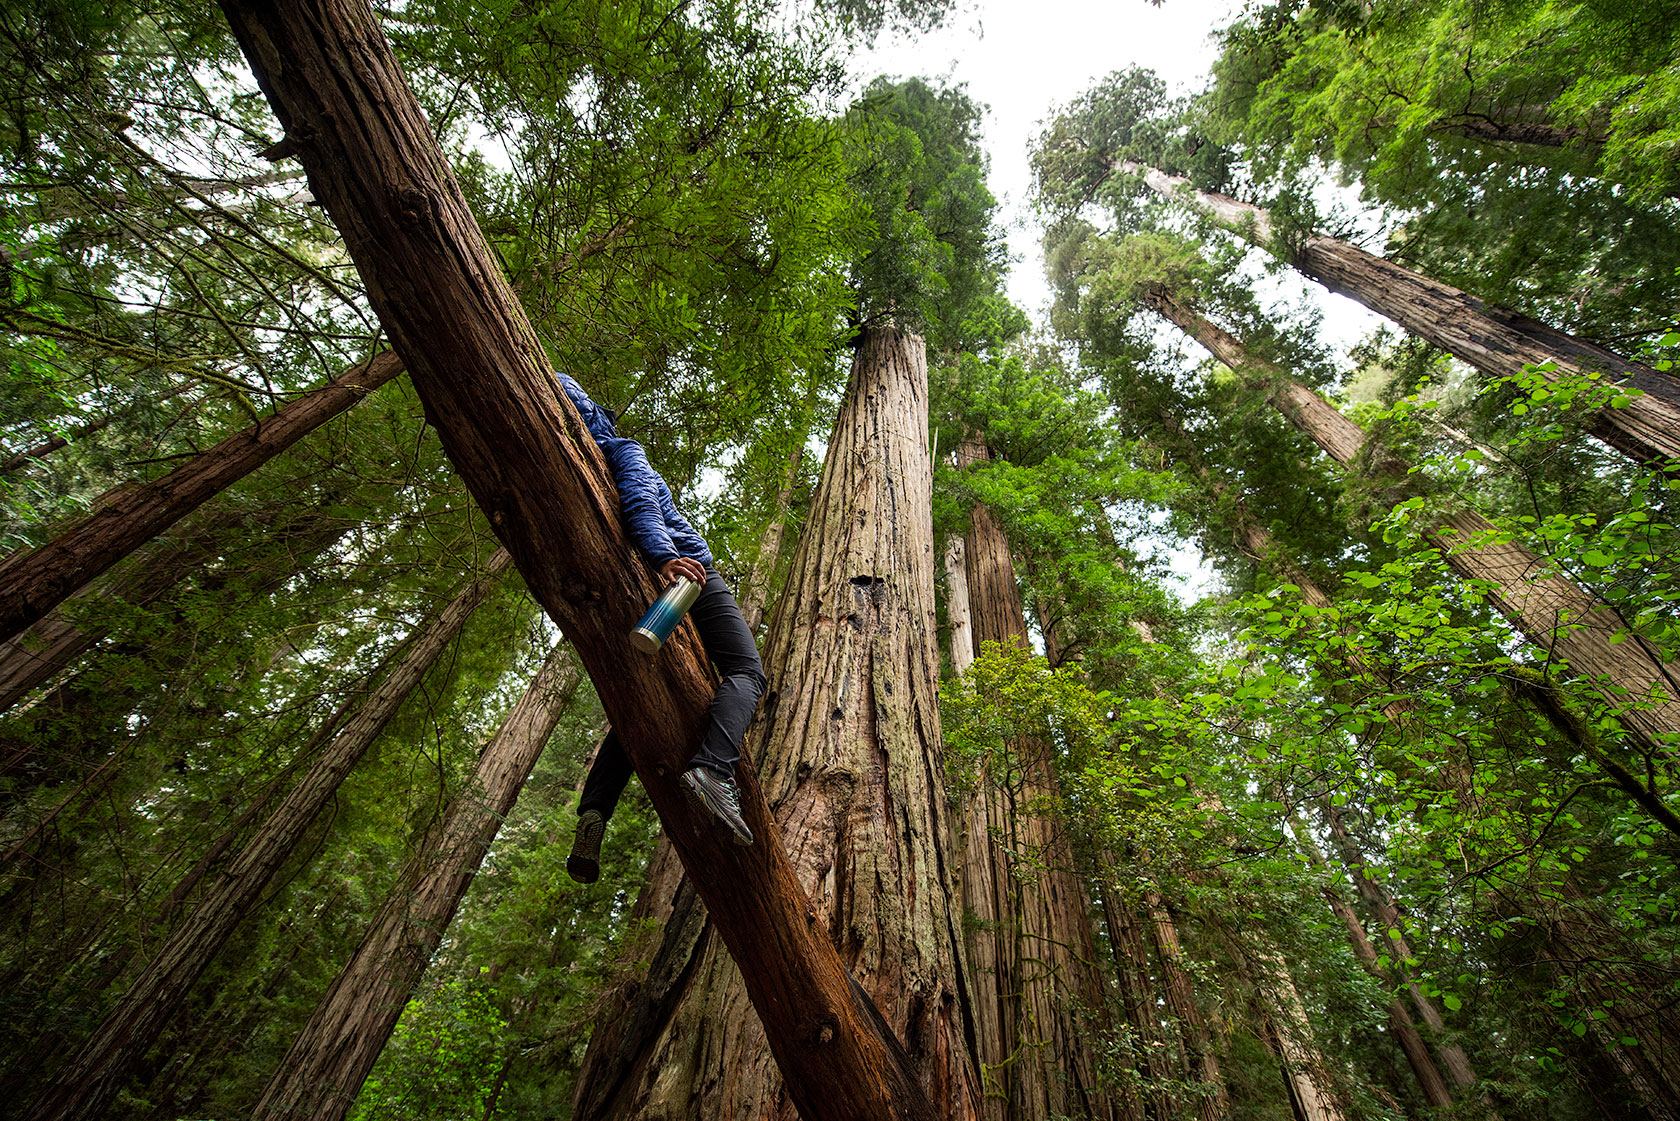 austin-trigg-redwood-water-bottle-Stout-grove-hanging-coffee-product-tall-tree-forest-northern-california.jpg